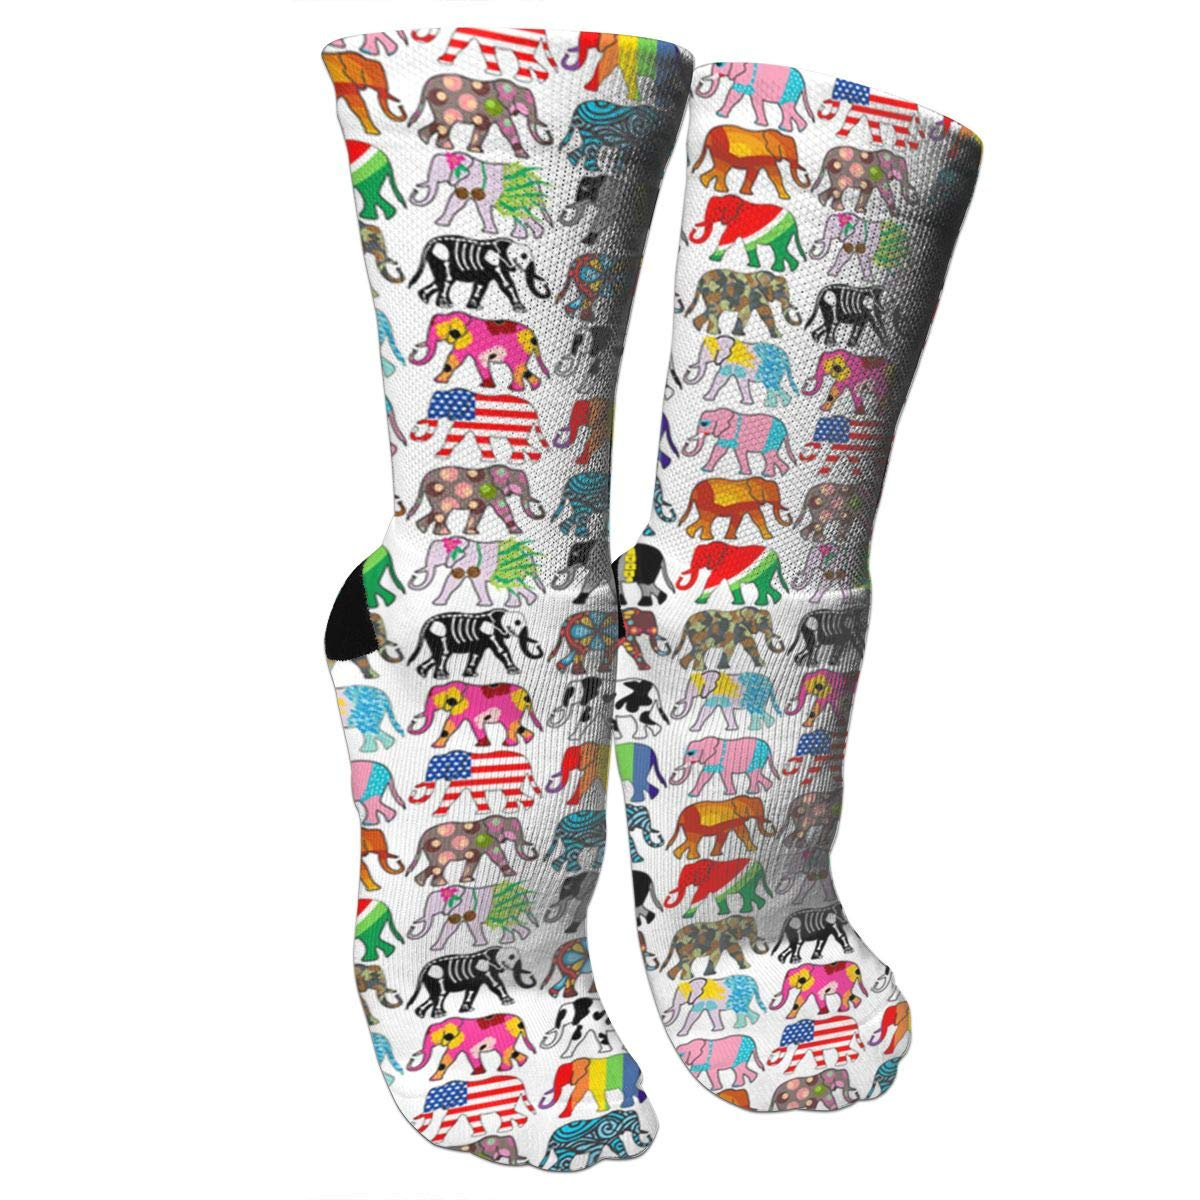 Flags Of Various Countries Elephant Casual Cotton Crew Socks Cute Funny Sock,great For Sports And Hiking